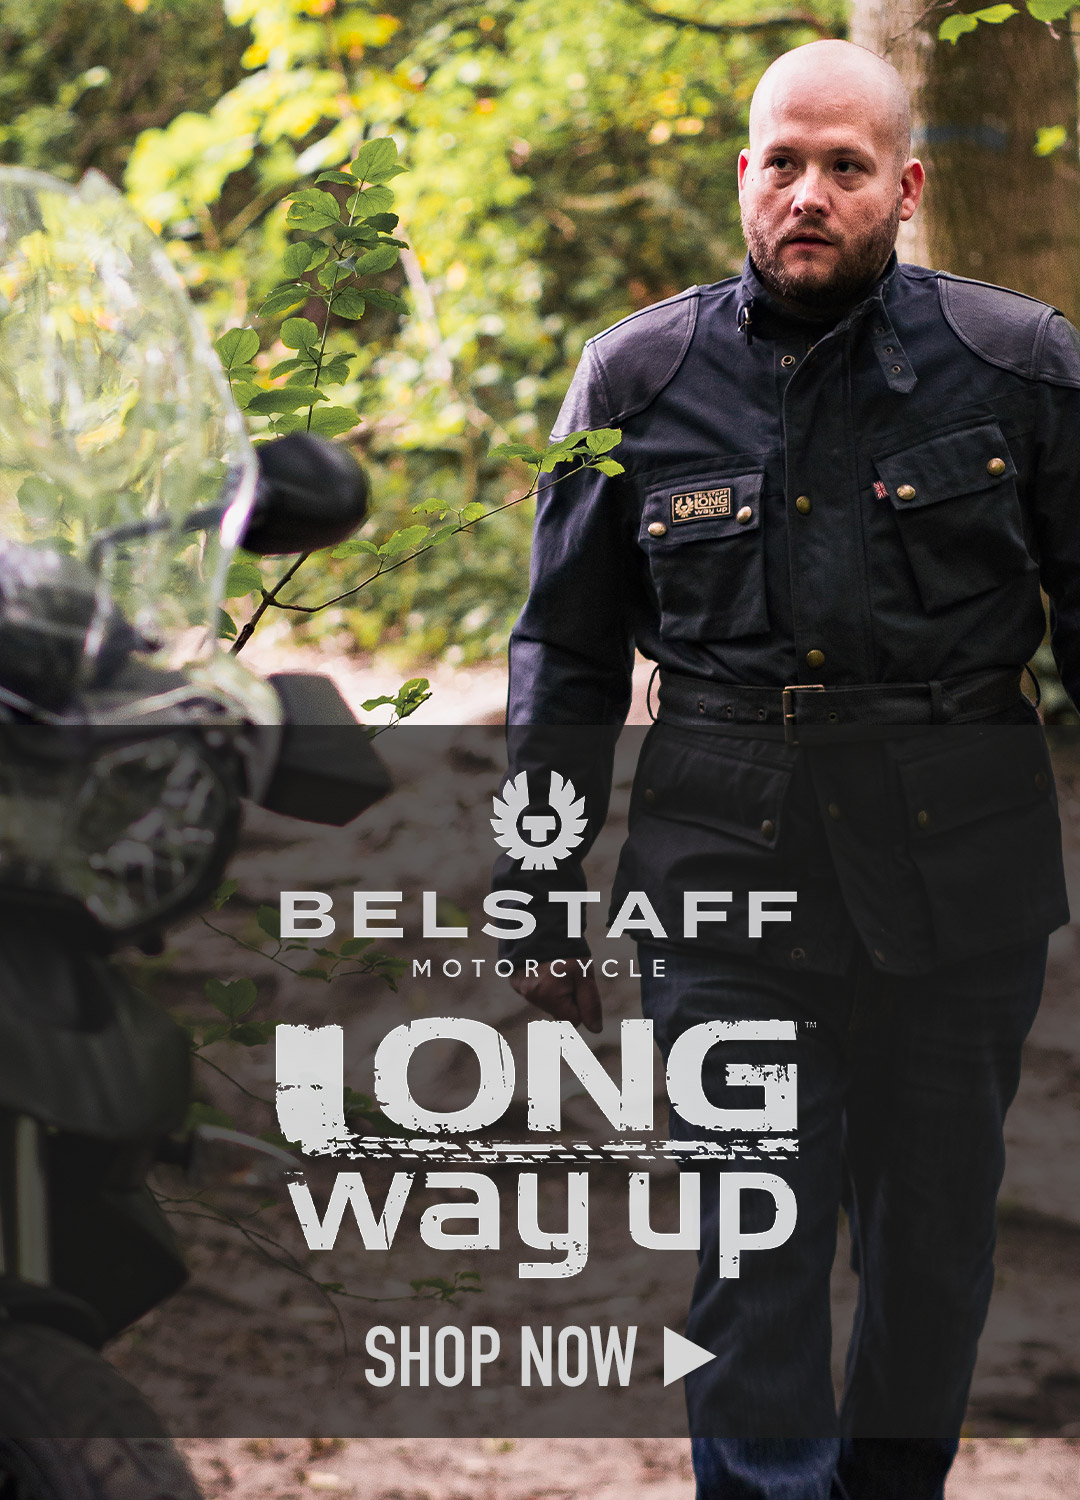 Belstaff Long Way Up Motorcycle Gear Collection